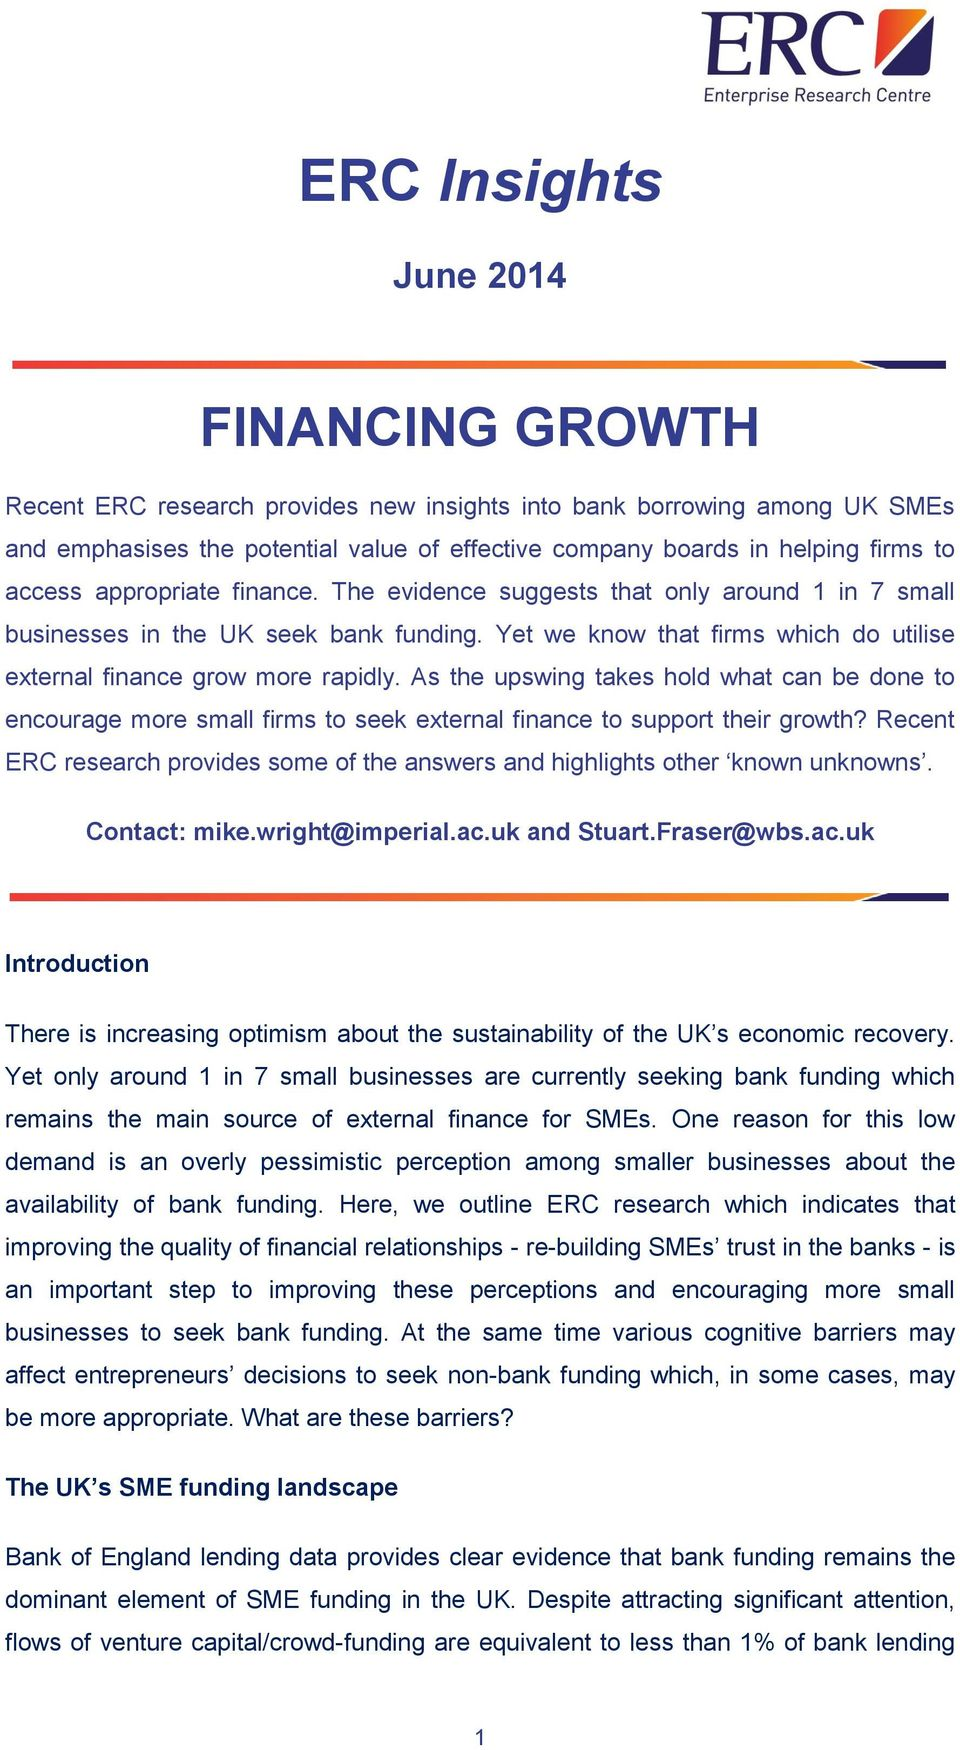 As the upswing takes hold what can be done to encourage more small firms to seek external finance to support their growth?